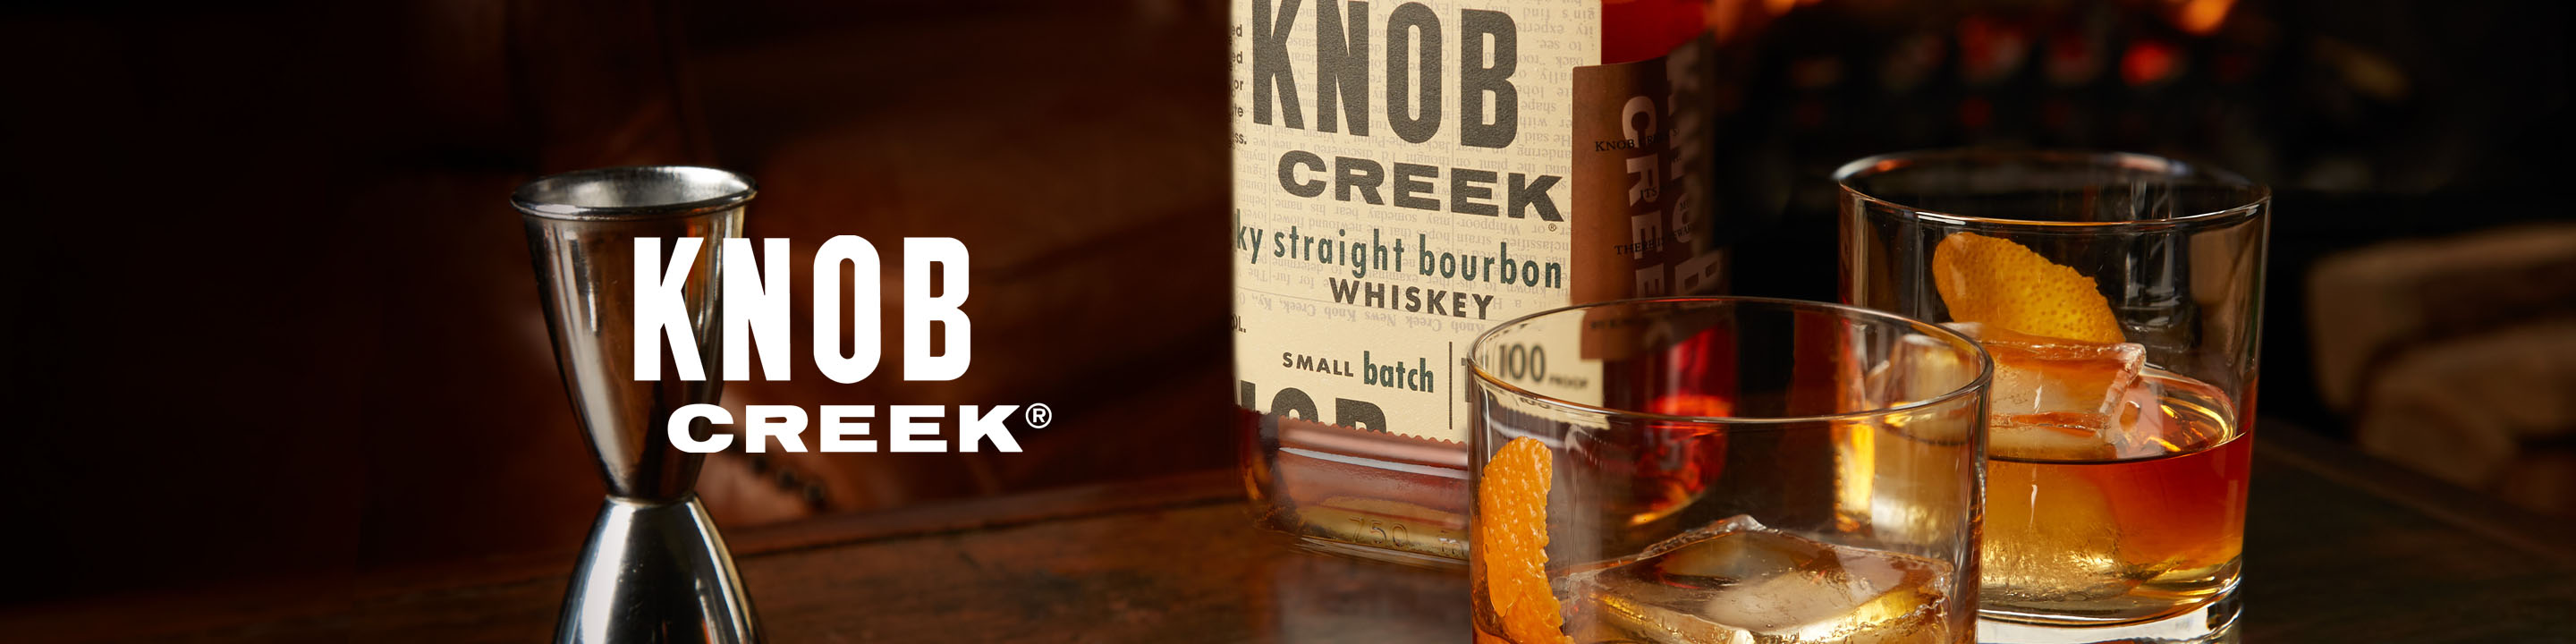 Knob Creek® Kentucky Straight Bourbon Whiskey is still made to exacting standards. Knob Creek® is aged to fully draw out the natural sugars in its charred white oak barrels. This exceptional, full-bodied bourbon strikes the senses with an oak aroma, a sweet, woody, full-bodied, almost fruity taste, with a long, rich finish. Created to reflect the flavor, strength, care, and patience that defined whiskey before Prohibition.  Buy Knob Creek online now from nearby liquor stores via Minibar Delivery.